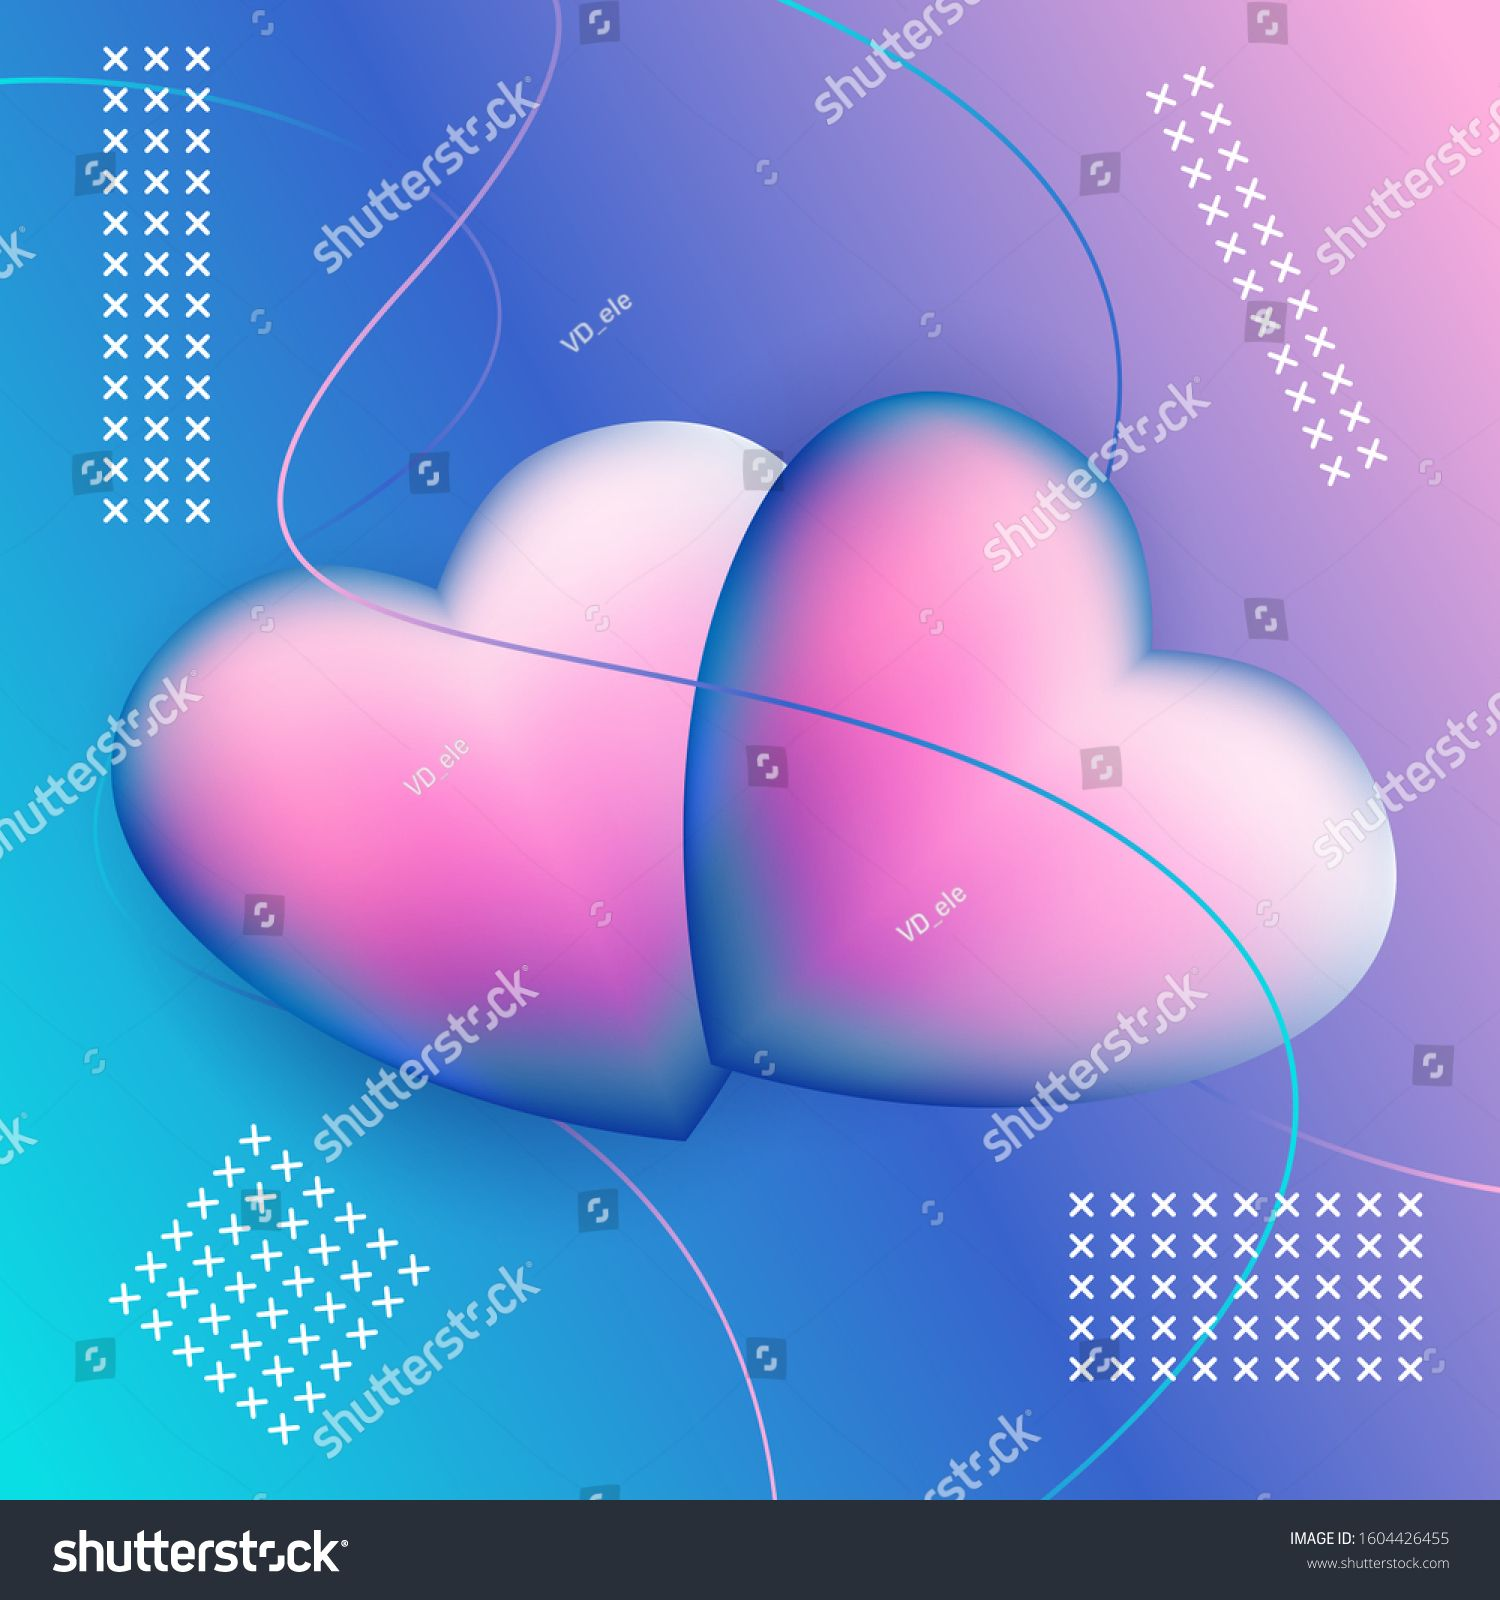 Gradient couple heart shapes. Vector stock illustration